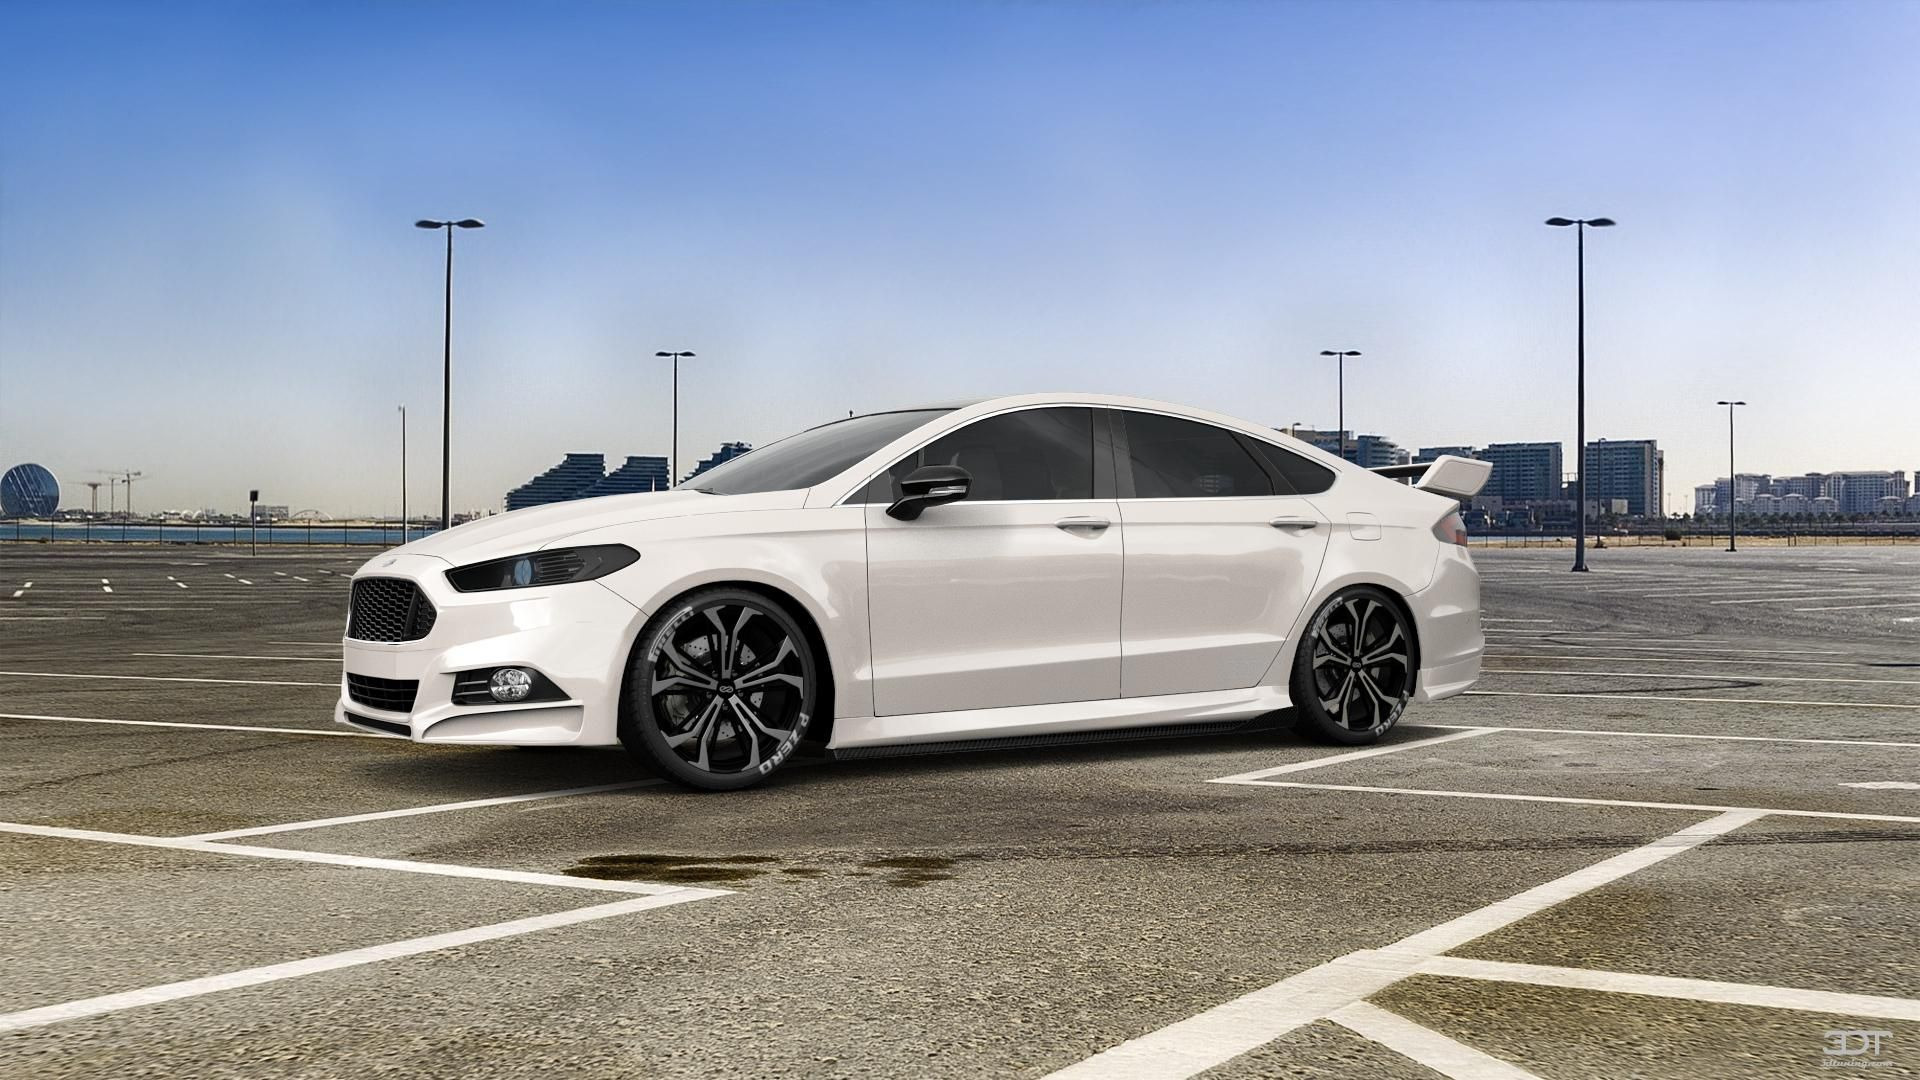 Too Much Loder1899 Gives New Ford Mondeo 22 Inch Wheels Carscoops Ford Mondeo Ford Hatchback